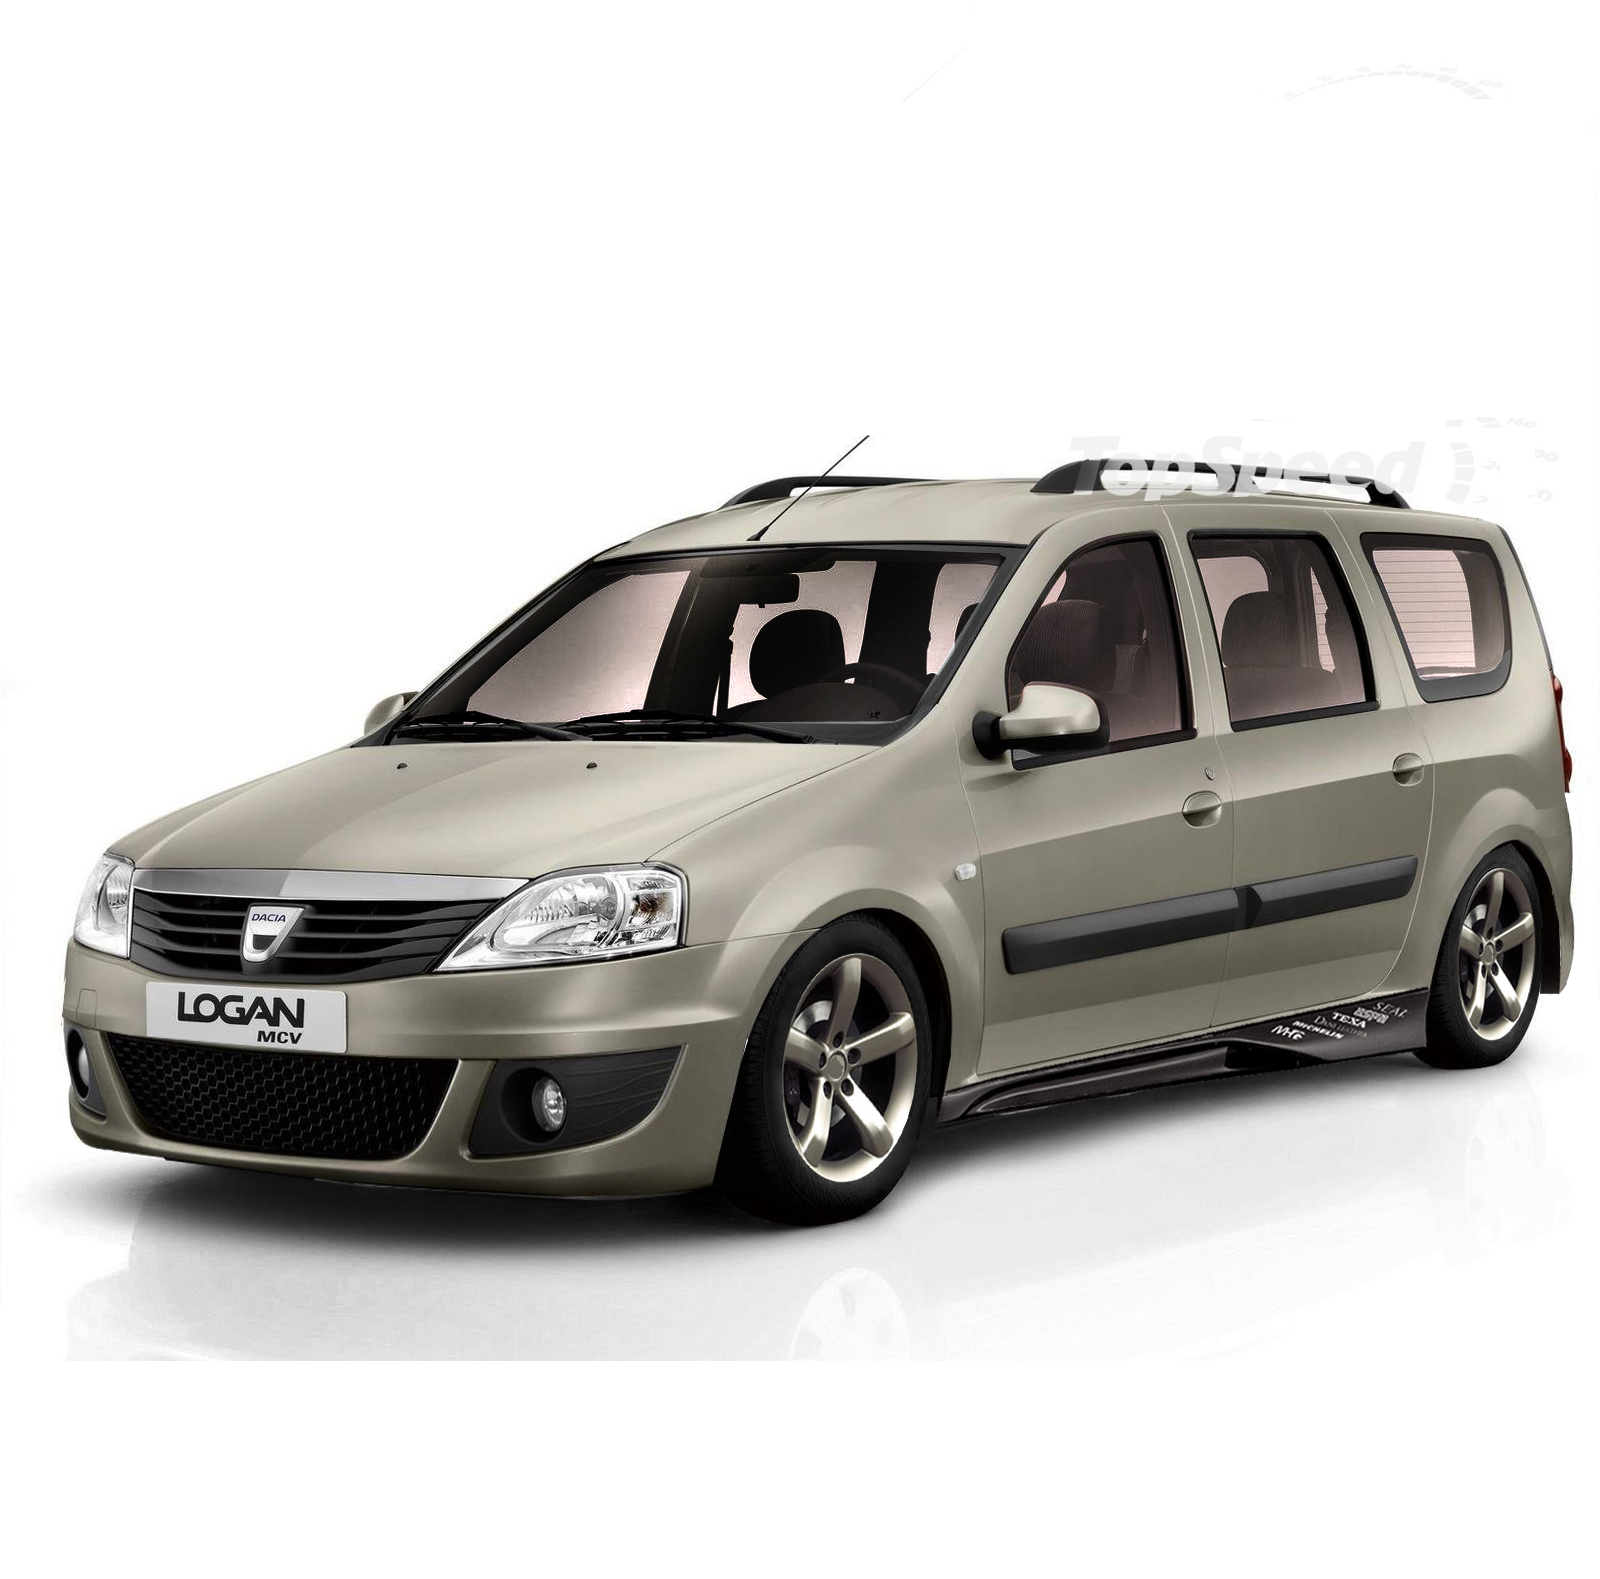 dacia logan mcv tuning photoshop tuning virtual tuning. Black Bedroom Furniture Sets. Home Design Ideas